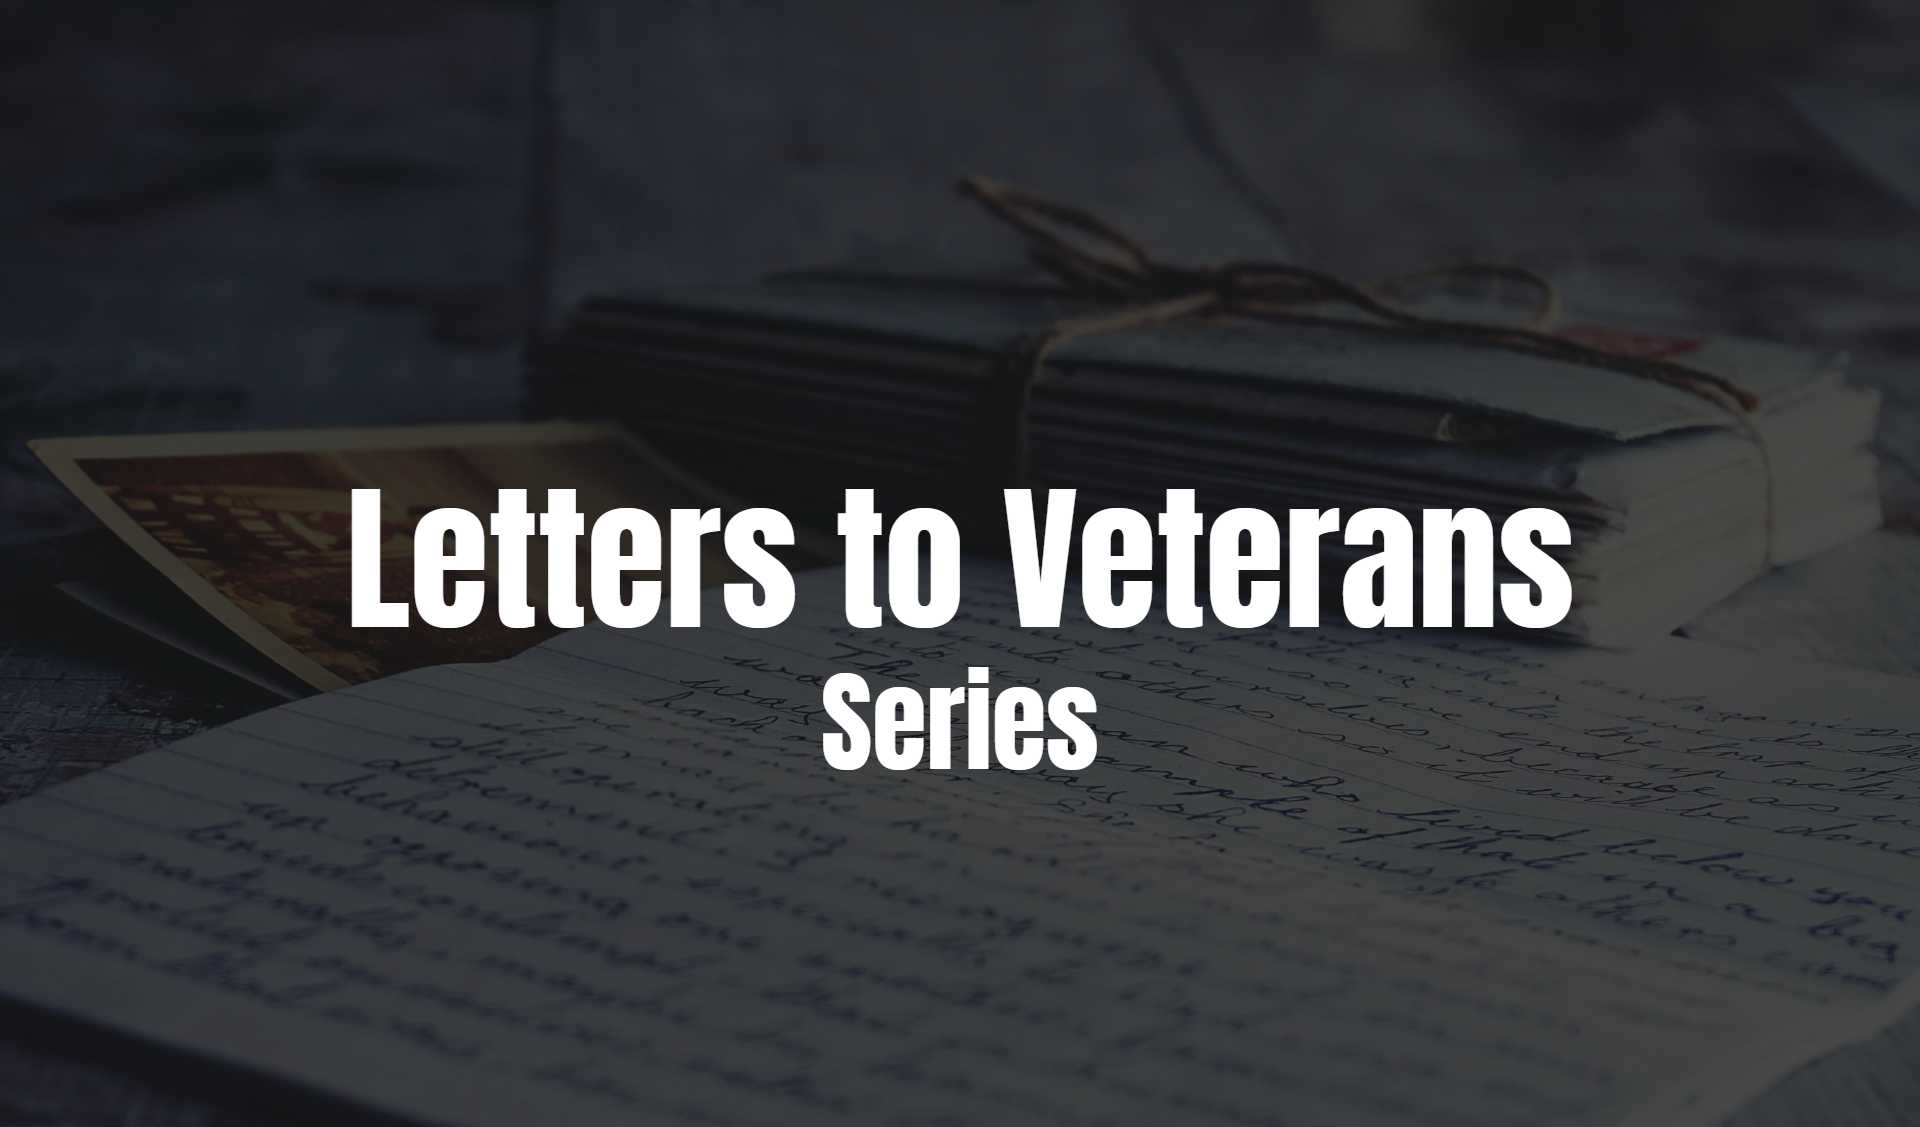 Letters to Vets series text on an old time letter background